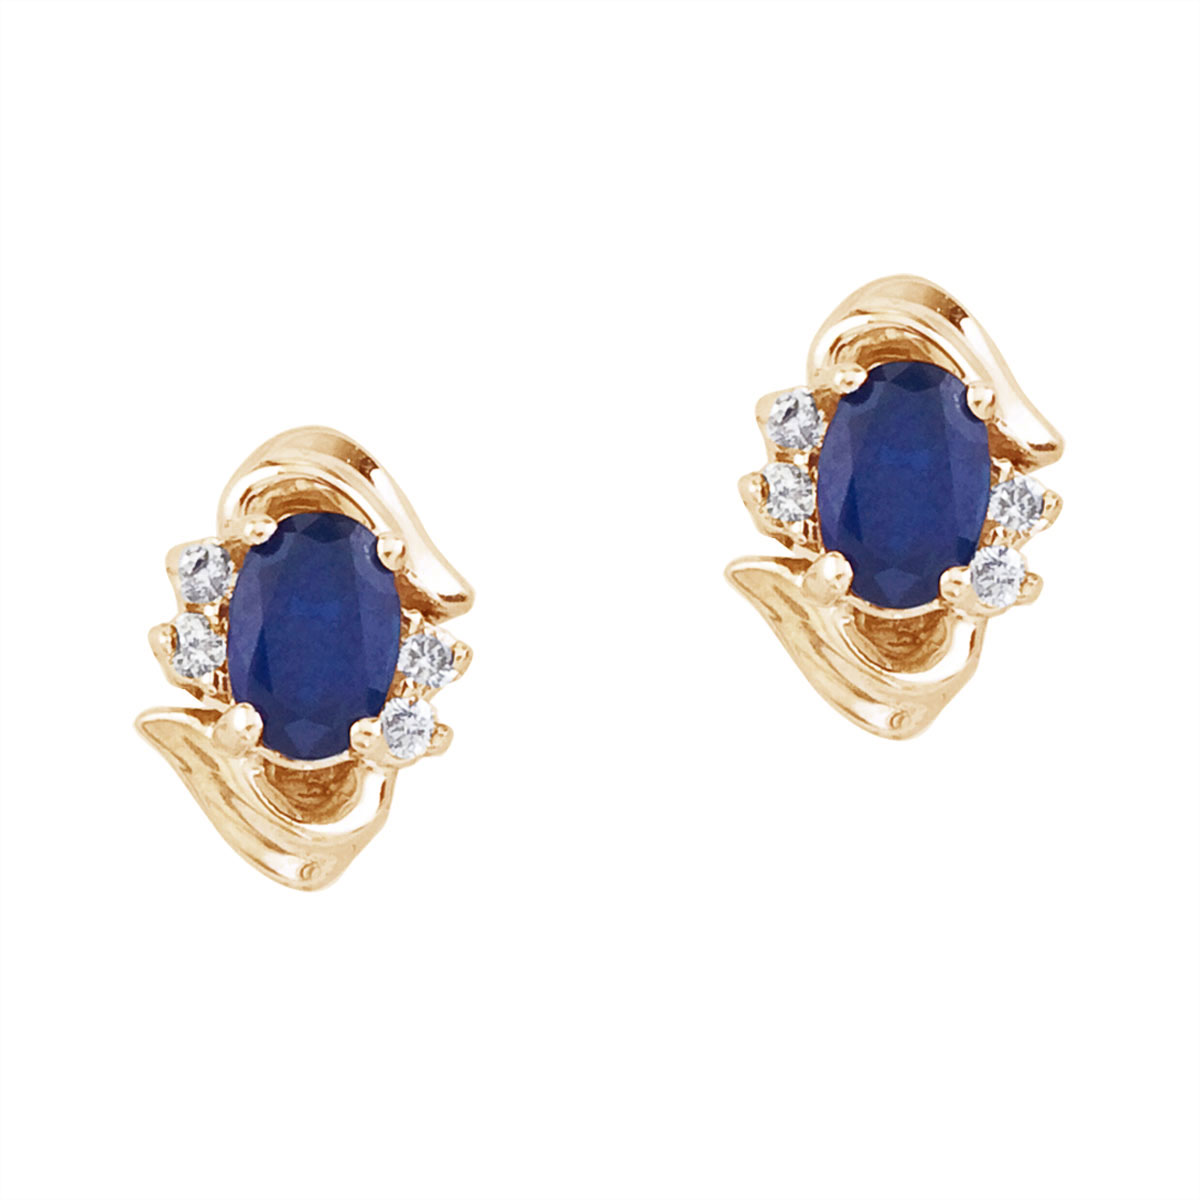 Stunning 14k yellow gold and sapphire earrings. Featuring natural 6x4 mm oval saphires and .11 to...